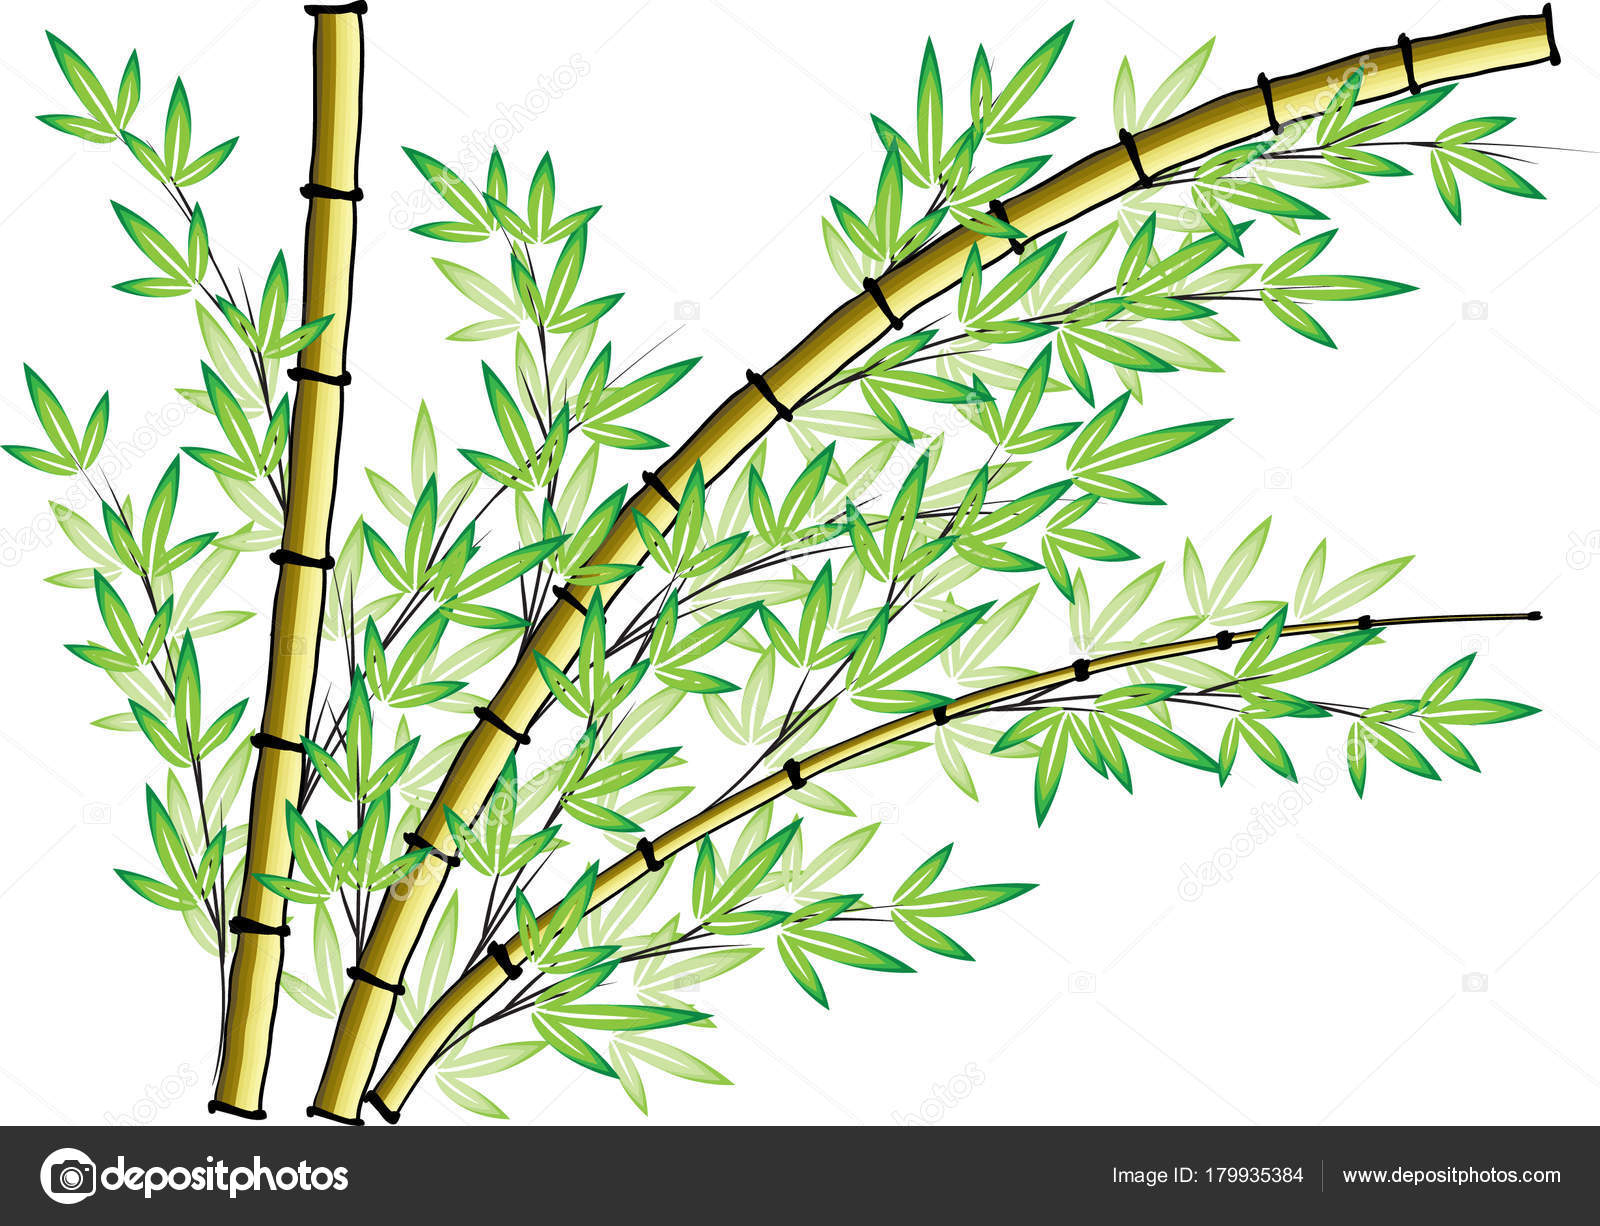 Bamboo Art Design : Bamboo drawing design pixshark images